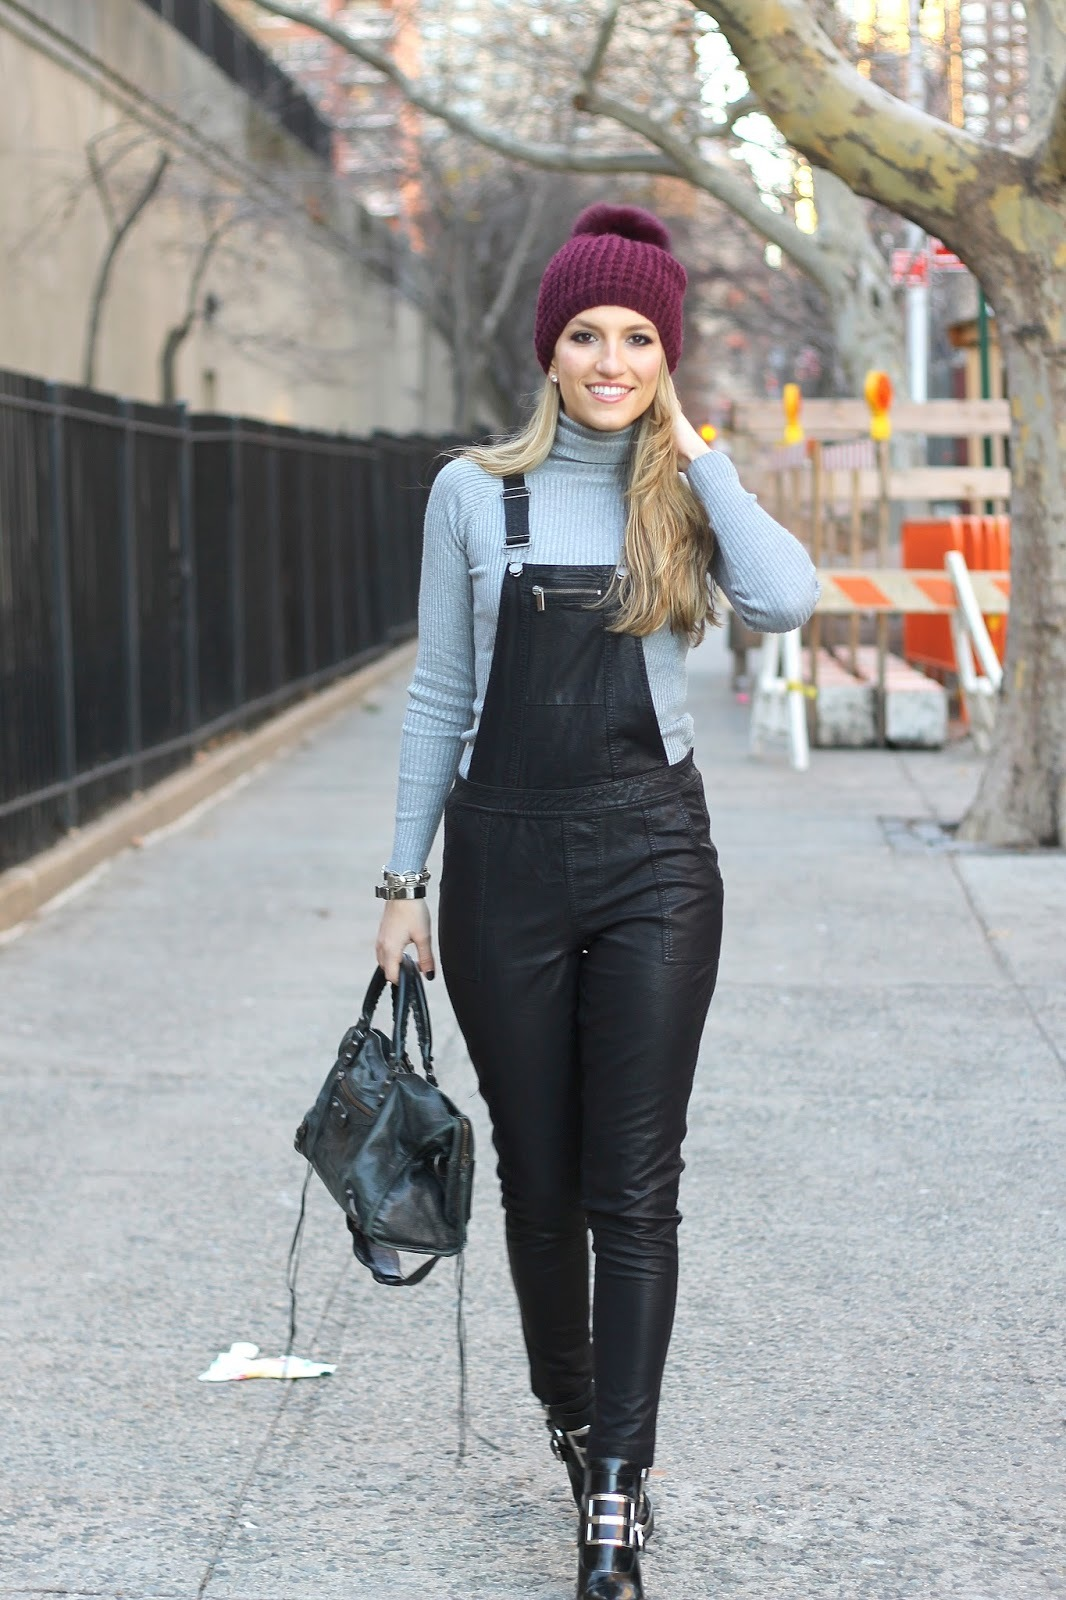 turtleneck-overalls-ankle-boots-original-14254